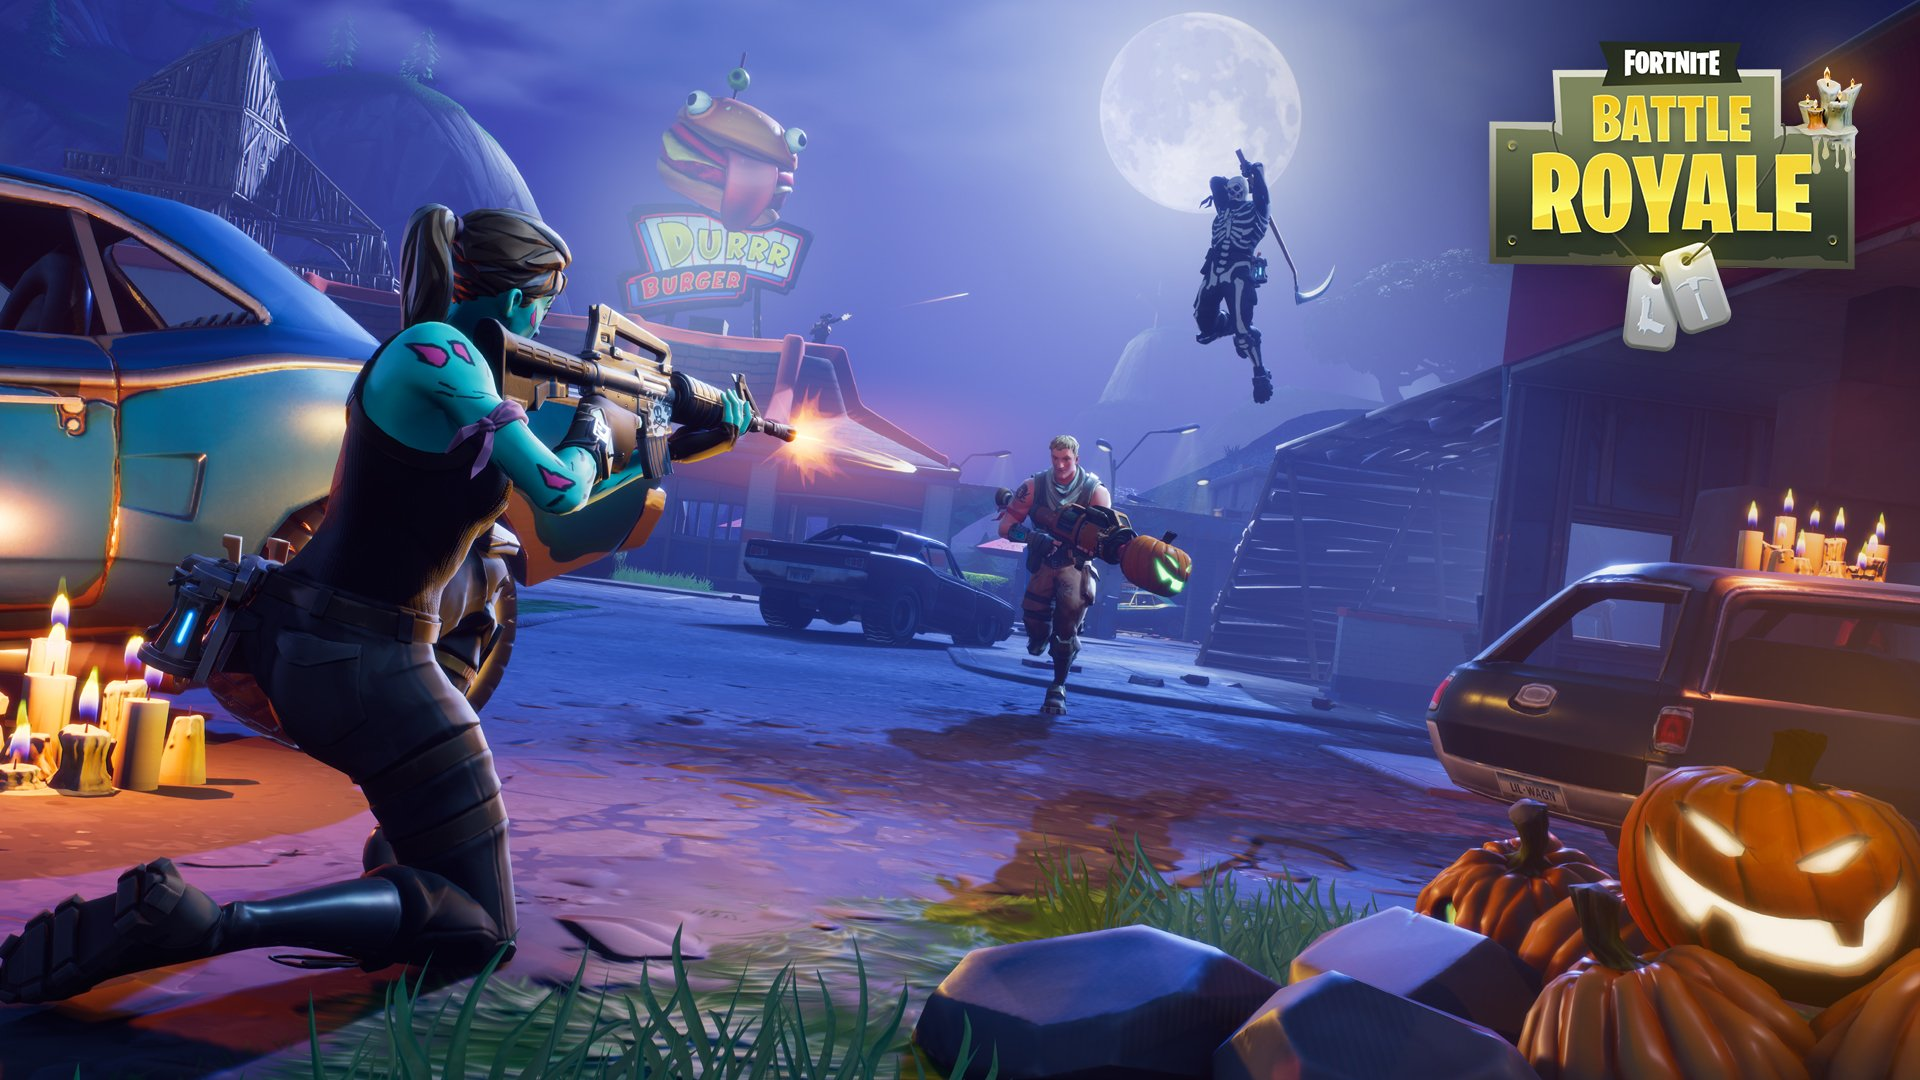 Fondos De Pantalla De Fortnite Battle Royale Wallpapers